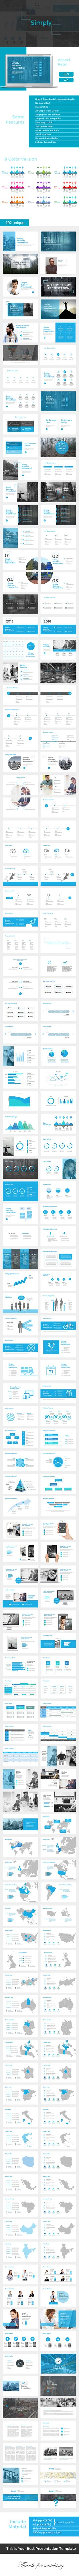 Simply Business Powerpoint Presentation Template  #simple #tech #marketing • Click here to download ! http://graphicriver.net/item/simply-business-powerpoint-presentation-template/16182501?ref=pxcr